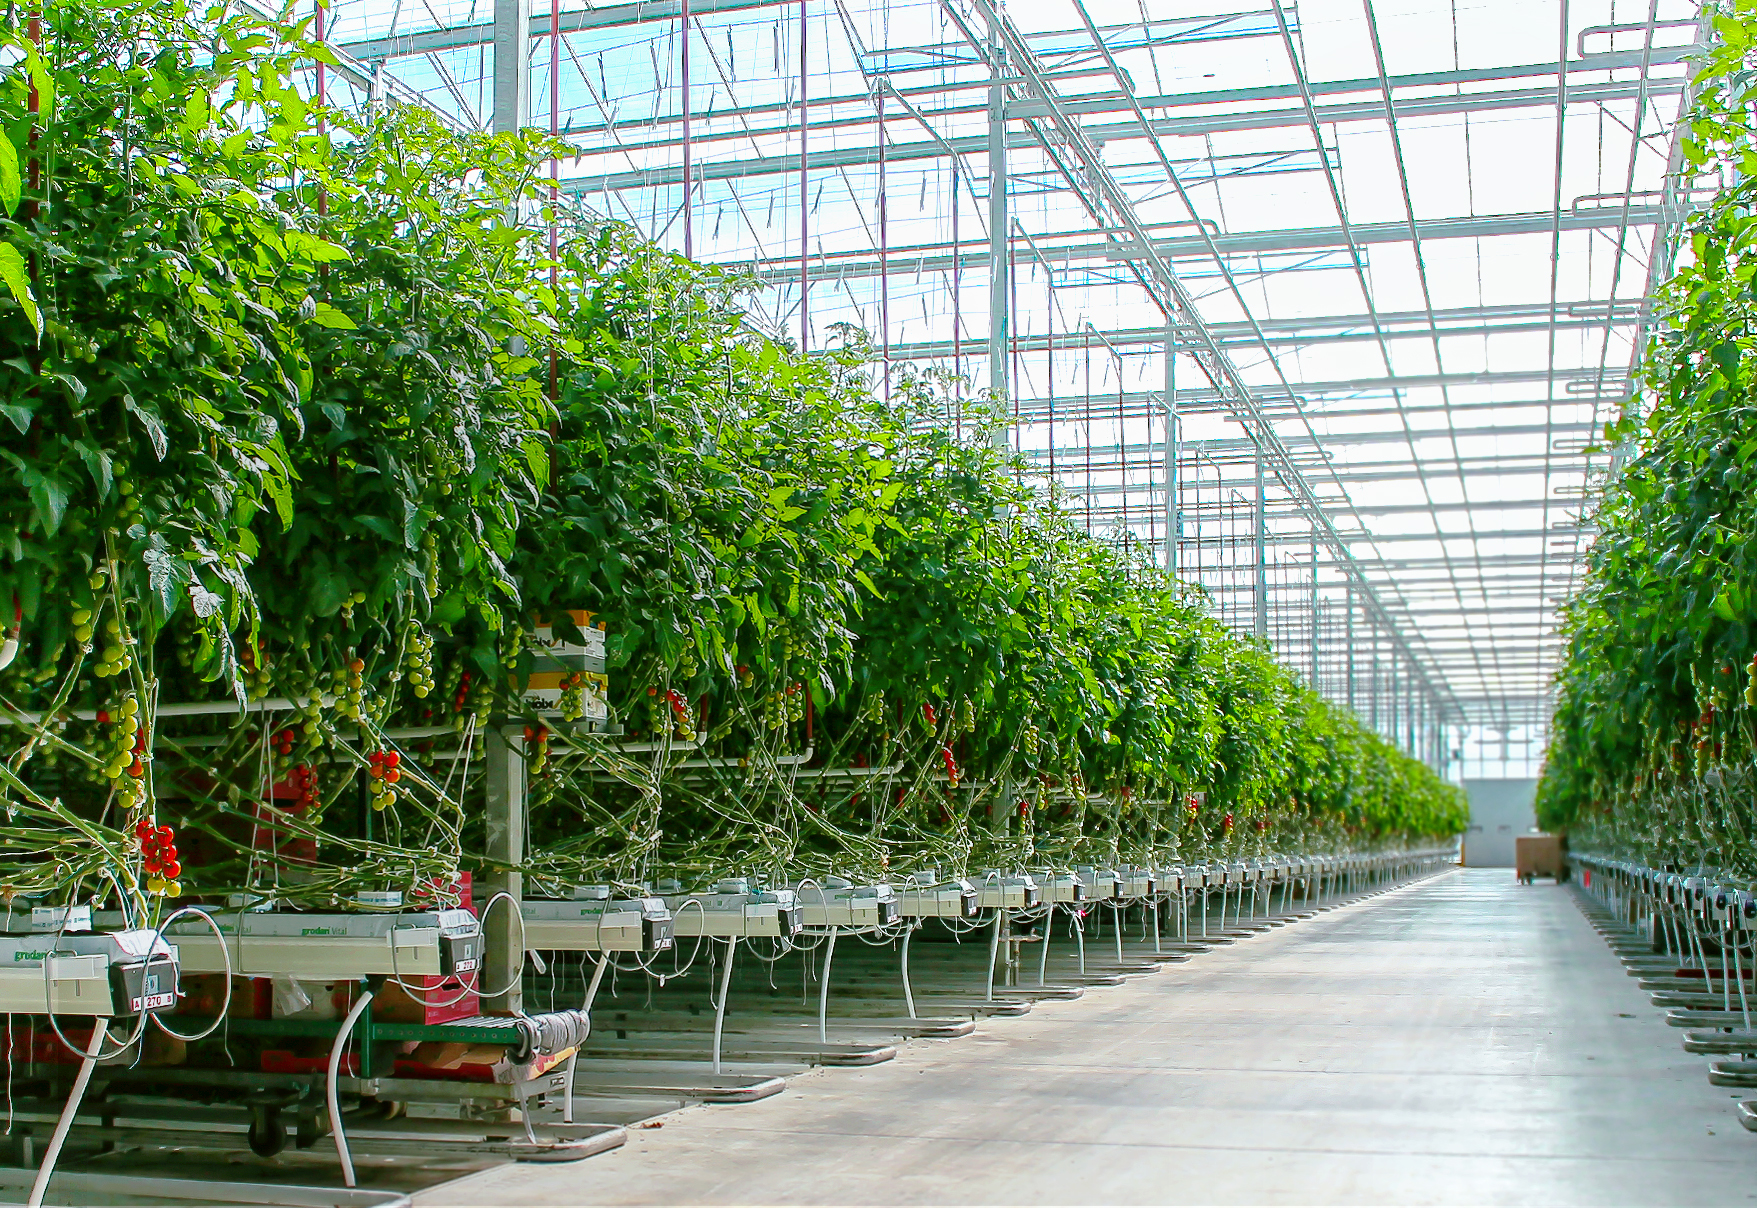 Ontario greenhouse industry sees continued growth